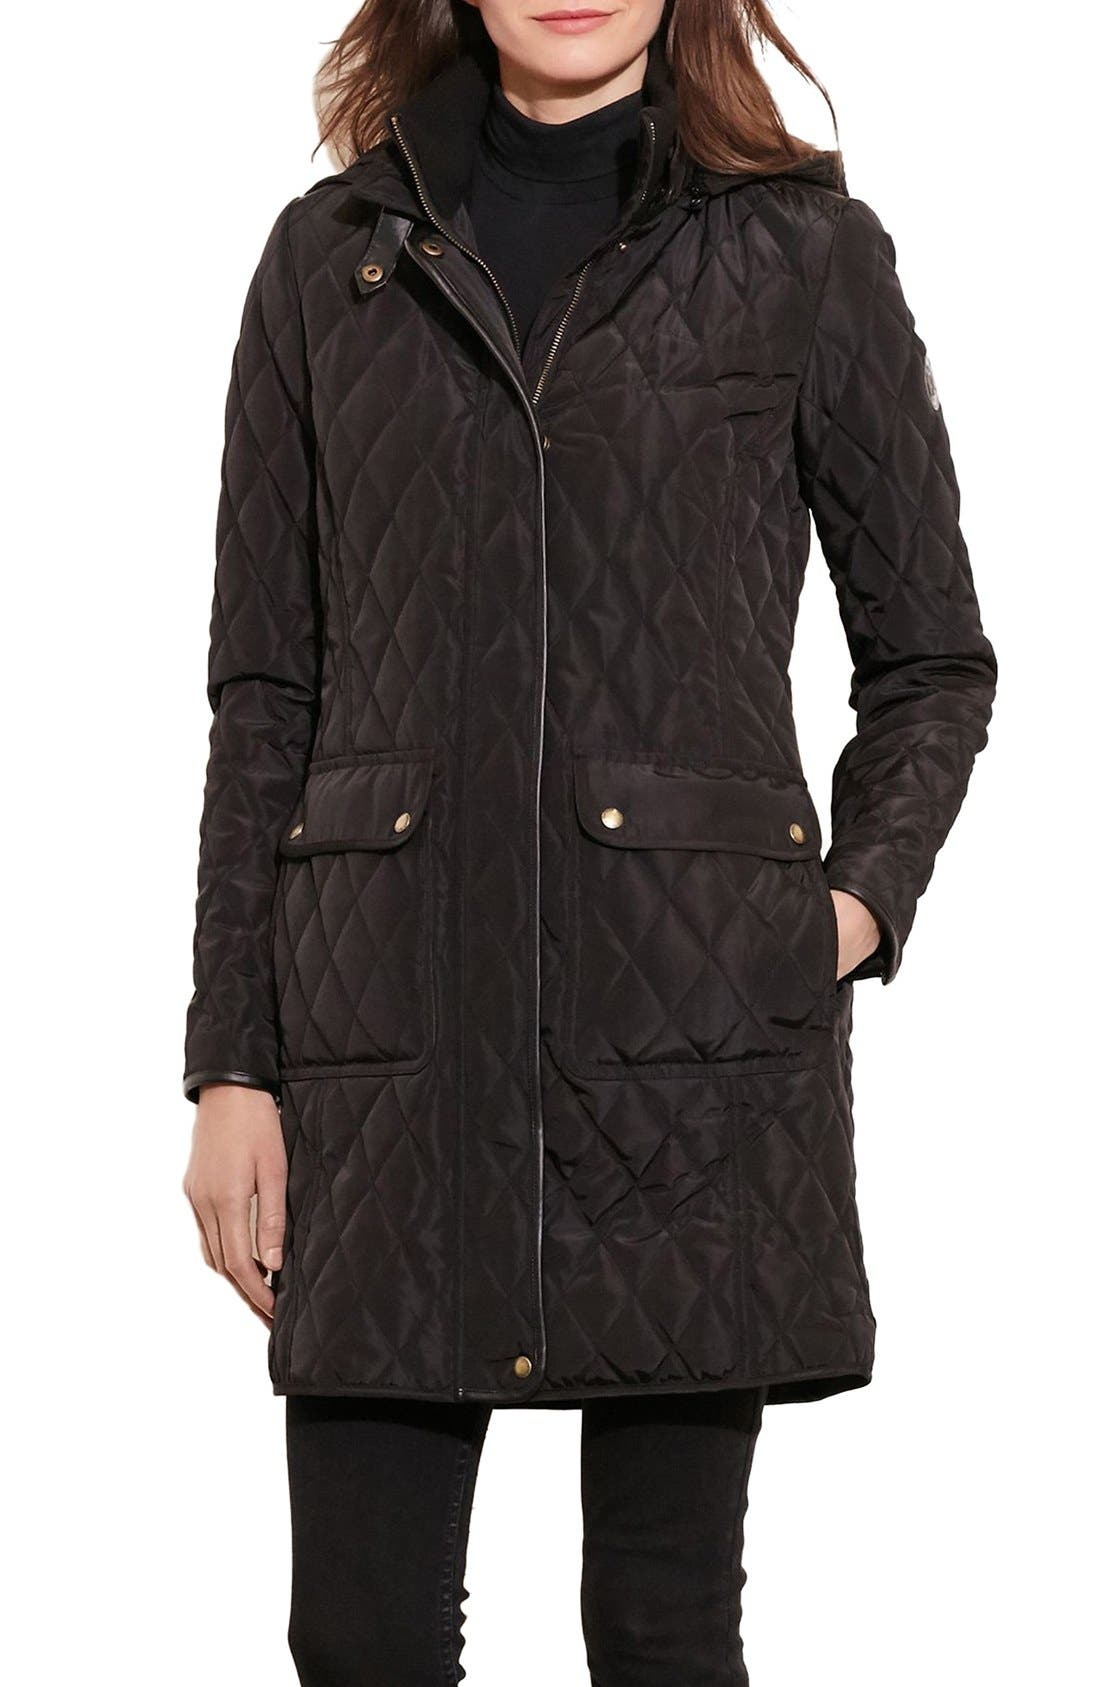 Alternate Image 1 Selected - Lauren Ralph Lauren Diamond Quilted Coat with Faux Leather Trim (Regular & Petite)